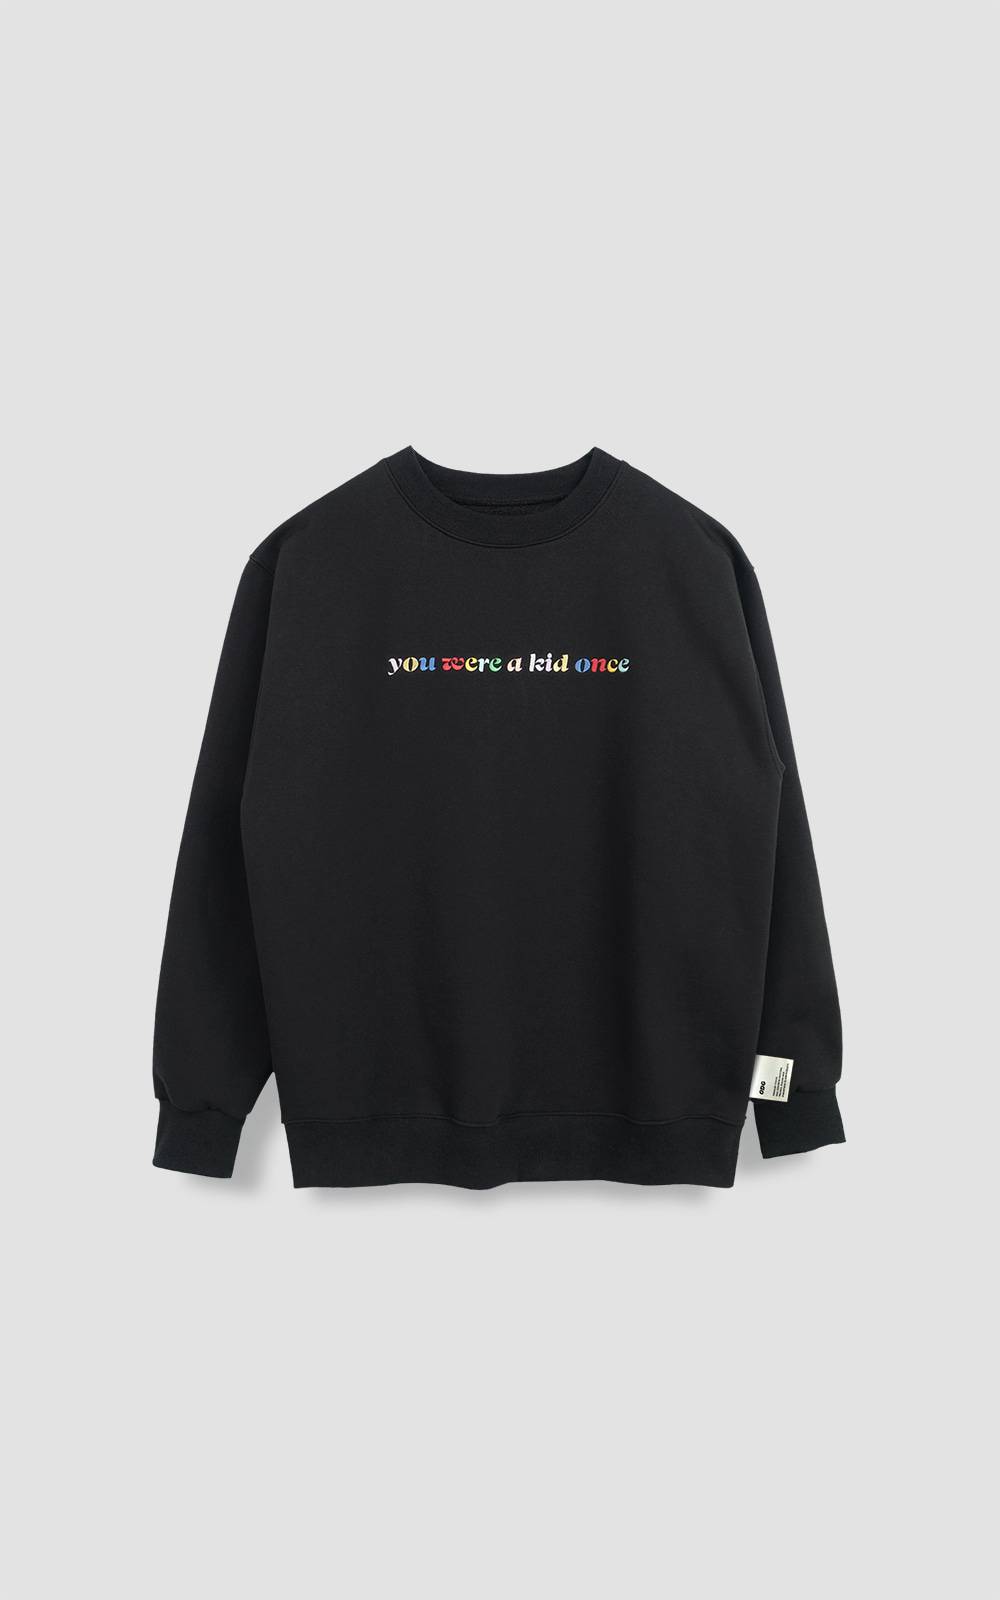 오디지 온라인 스토어RAINBOW SWEATSHIRTOwn label brand